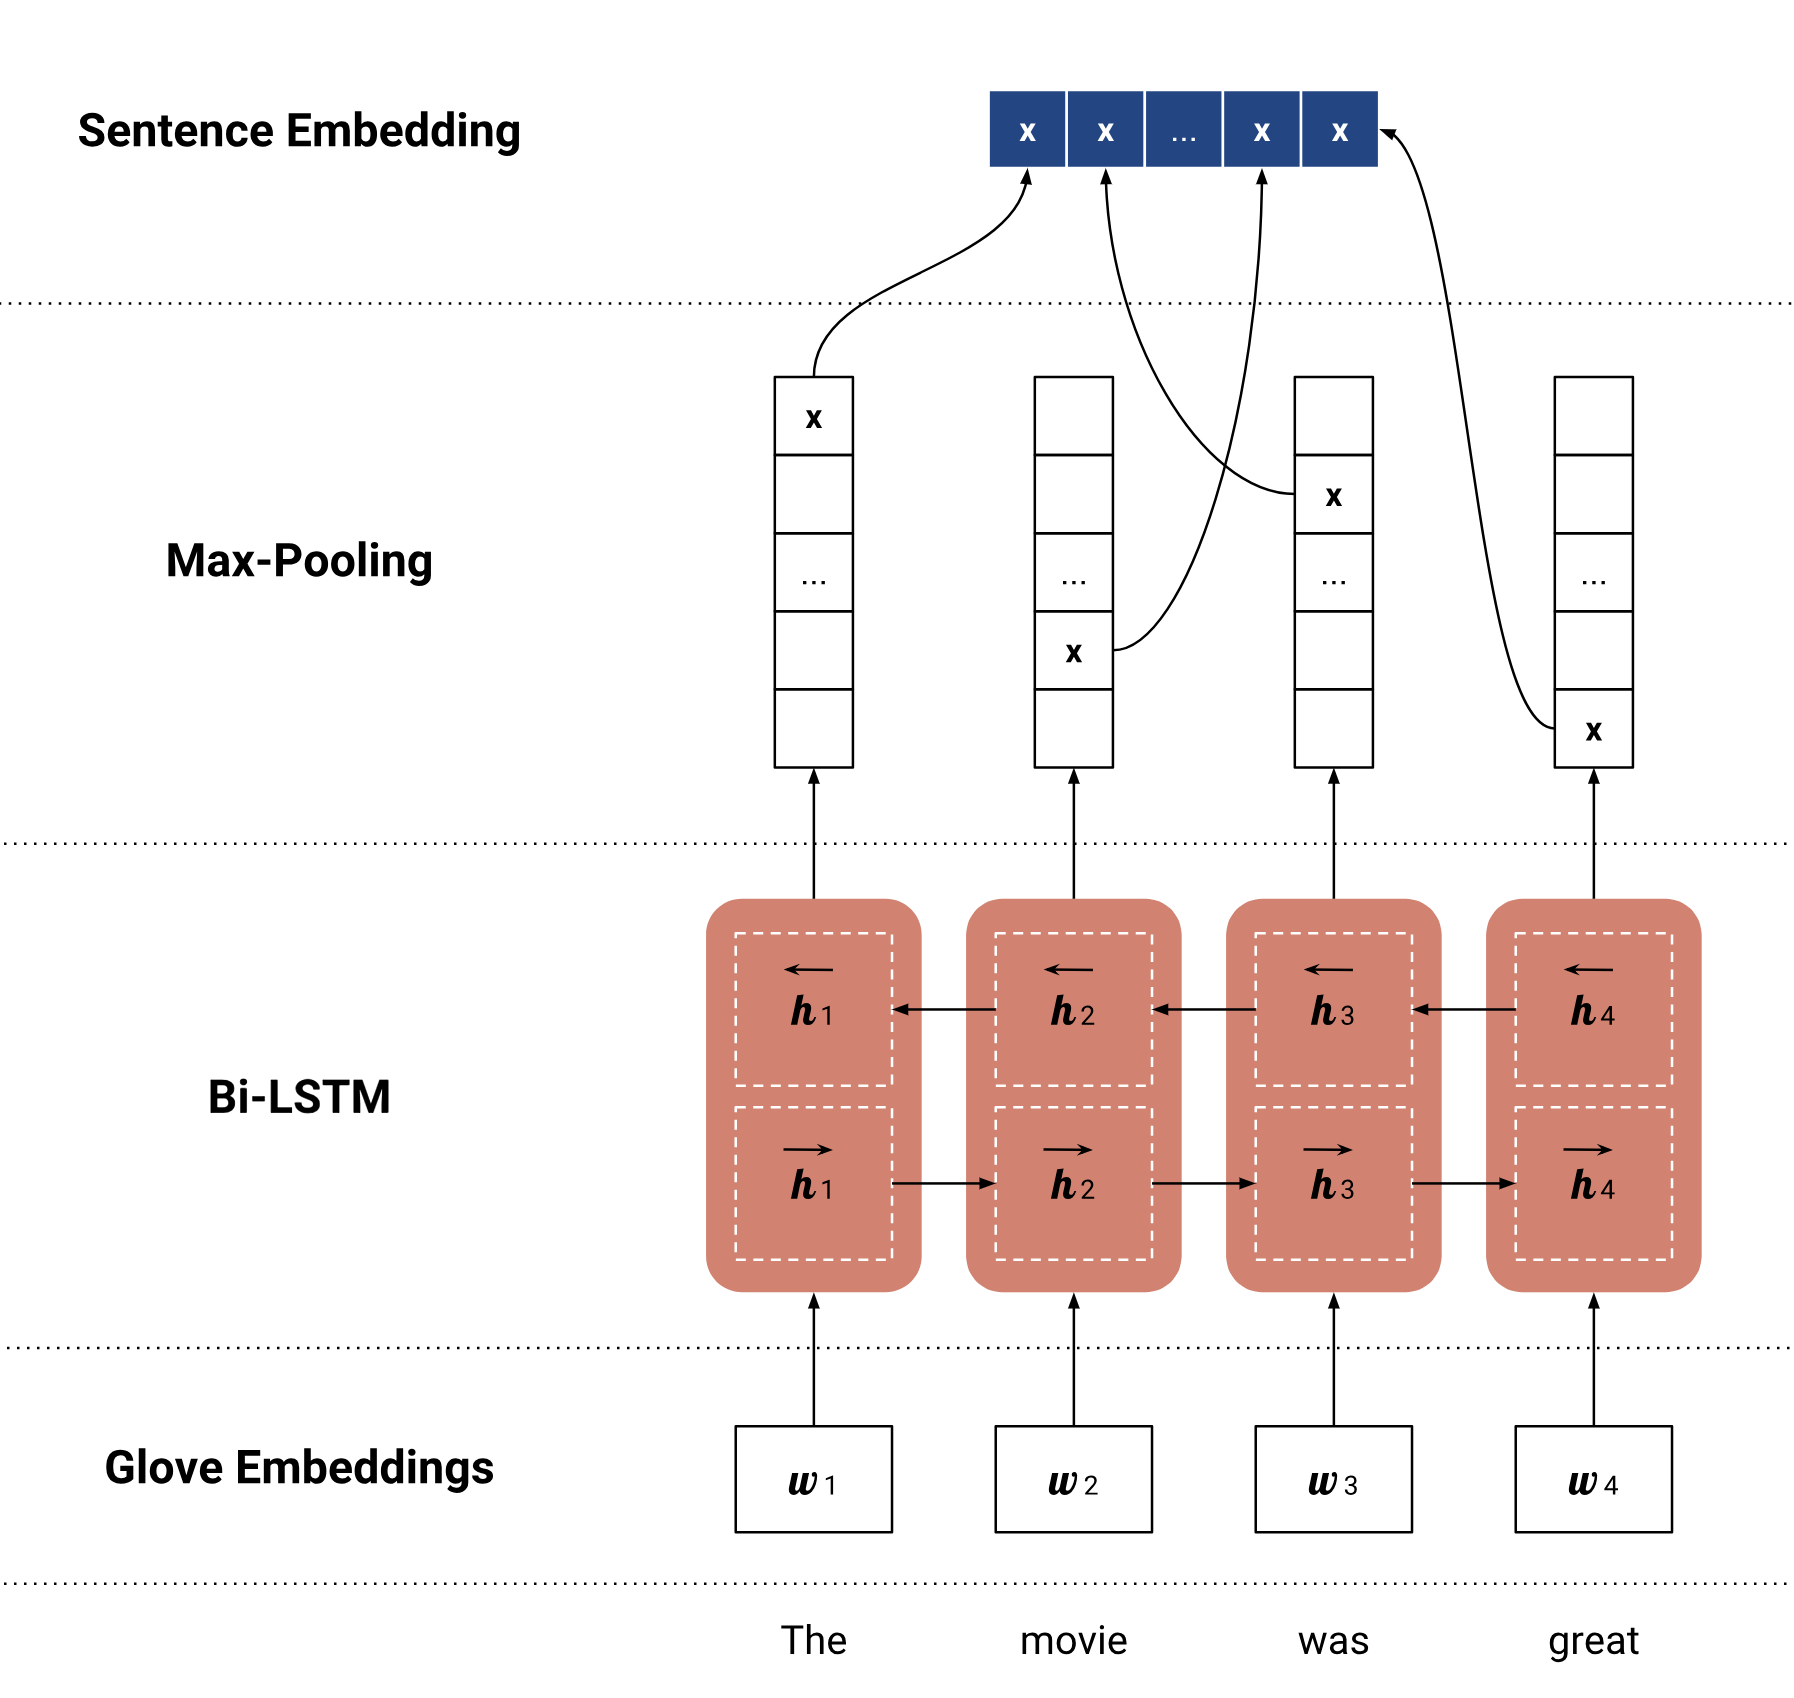 Bi-LSTM and Max-Pooling encoder for sentence embedding